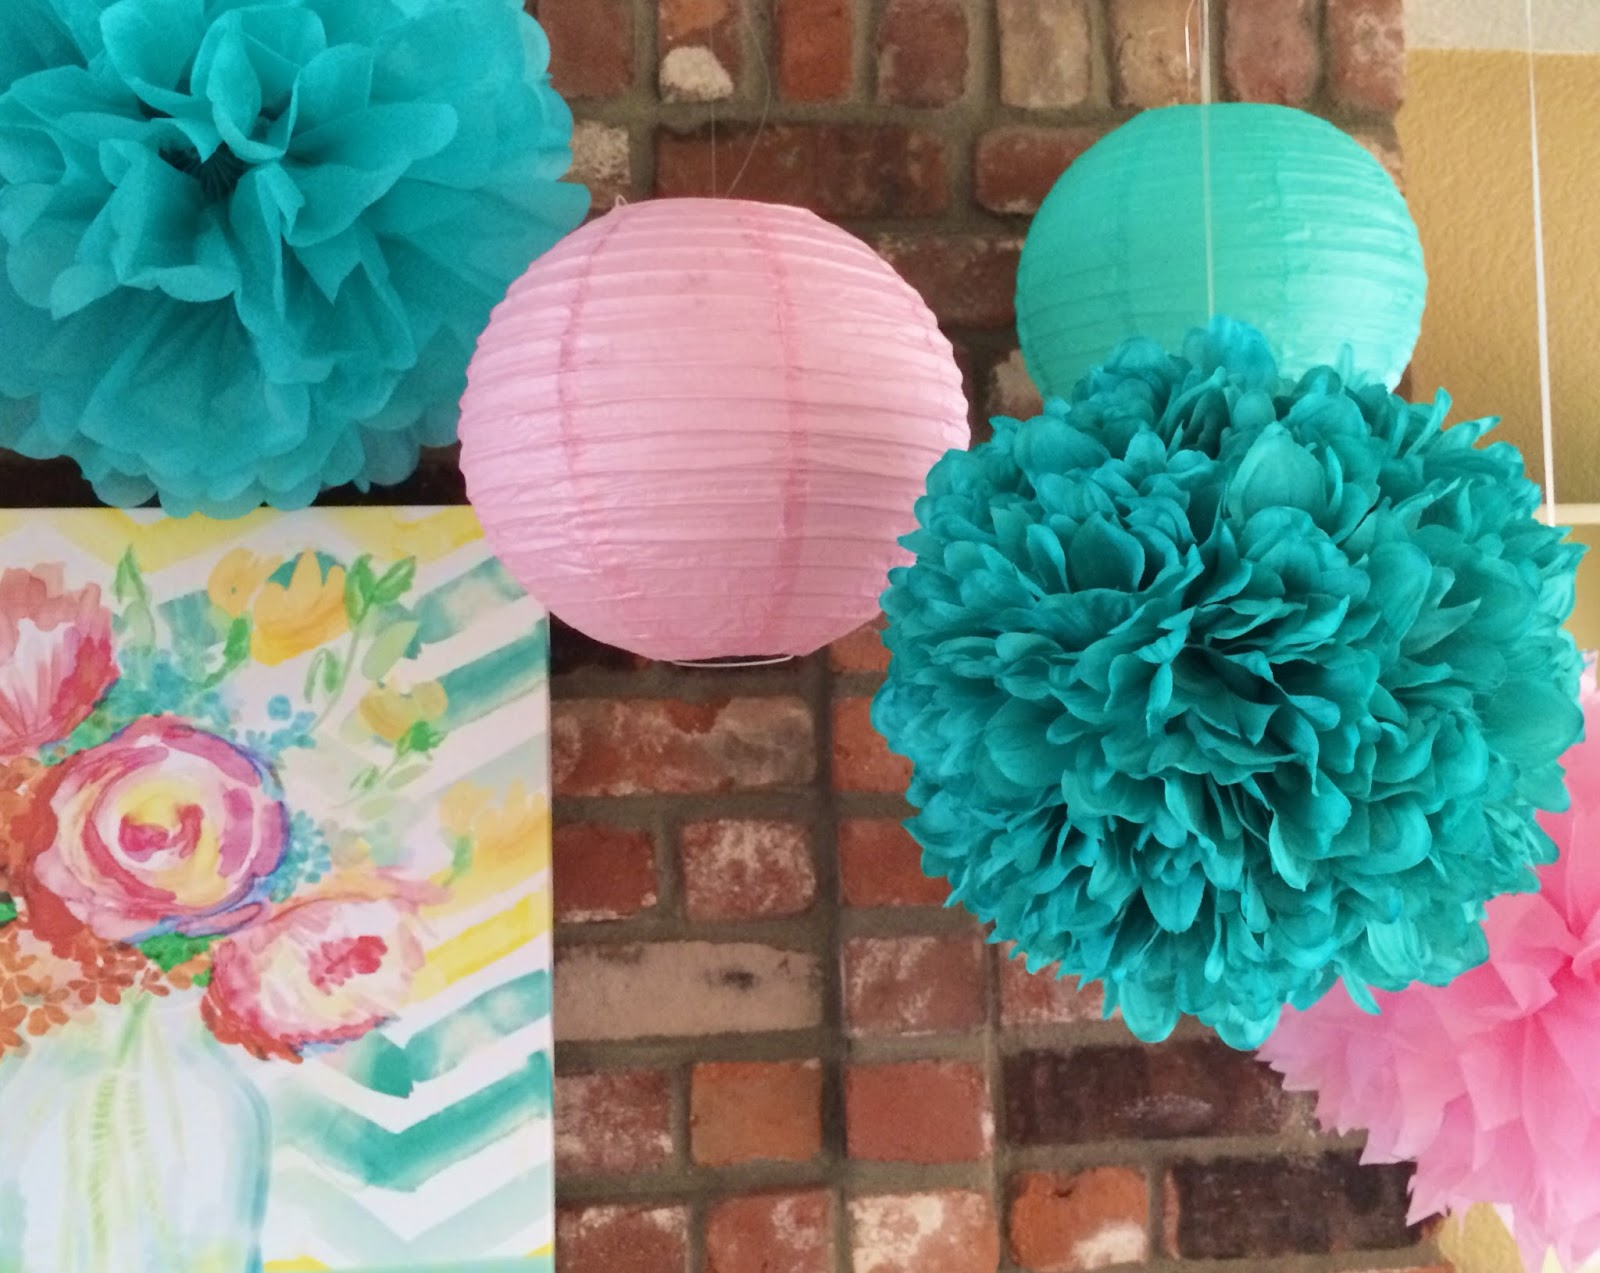 How to make flower decorations out of tissue paper beautiful how to make flower decorations out of tissue paper onwe bioinnovate co how to make flower decorations out of tissue paper diy tissue paper flowers tutorial mightylinksfo